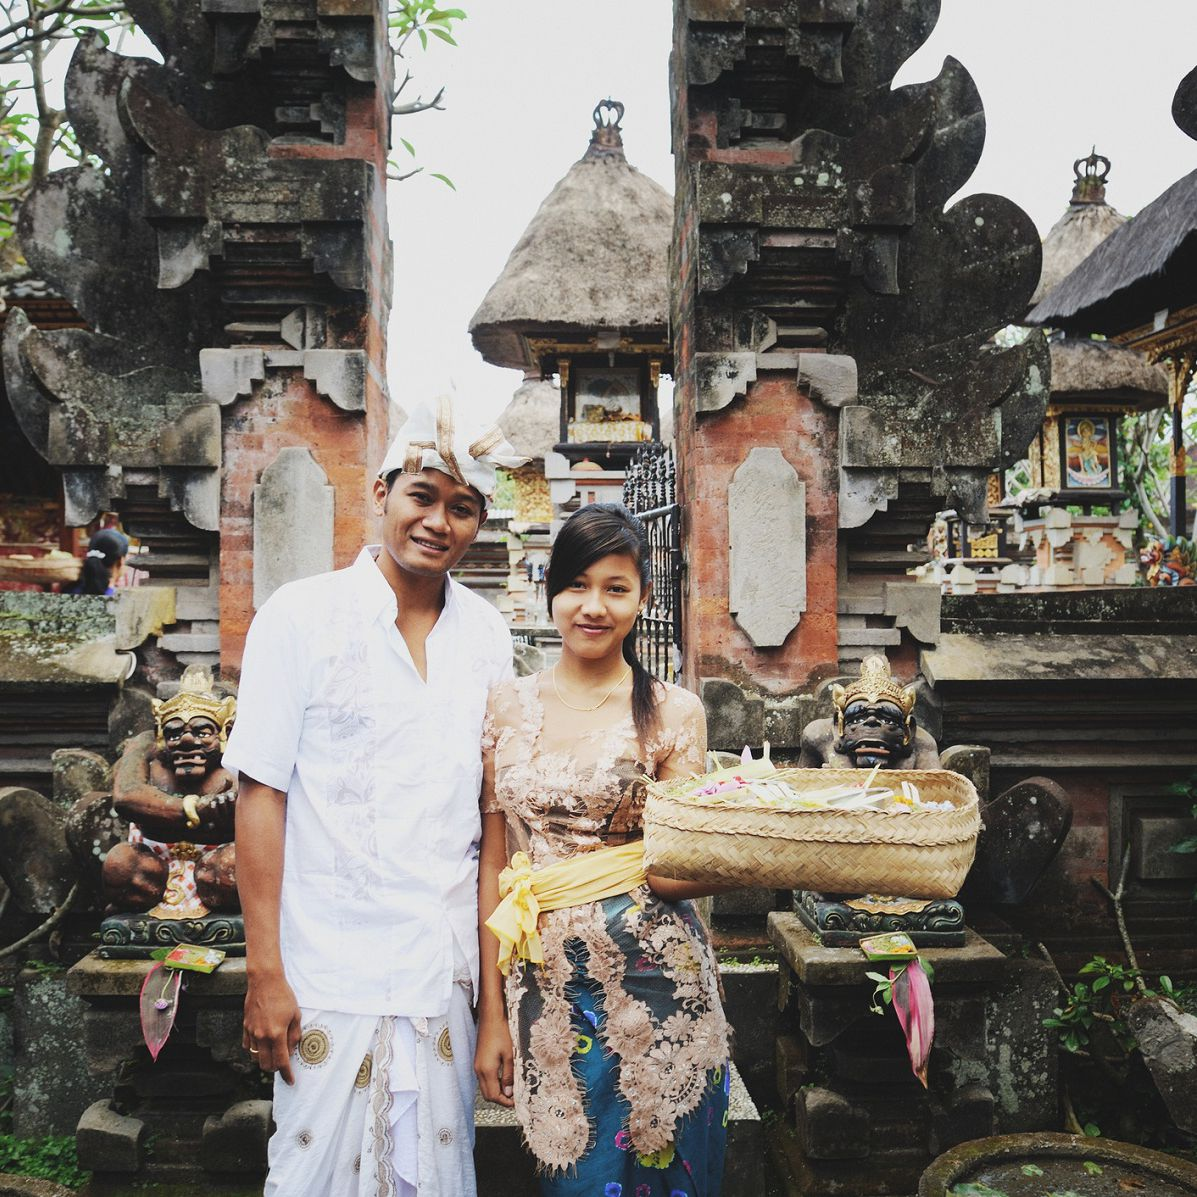 For a Great Bali Trip, Follow These Simple Etiquette Tips